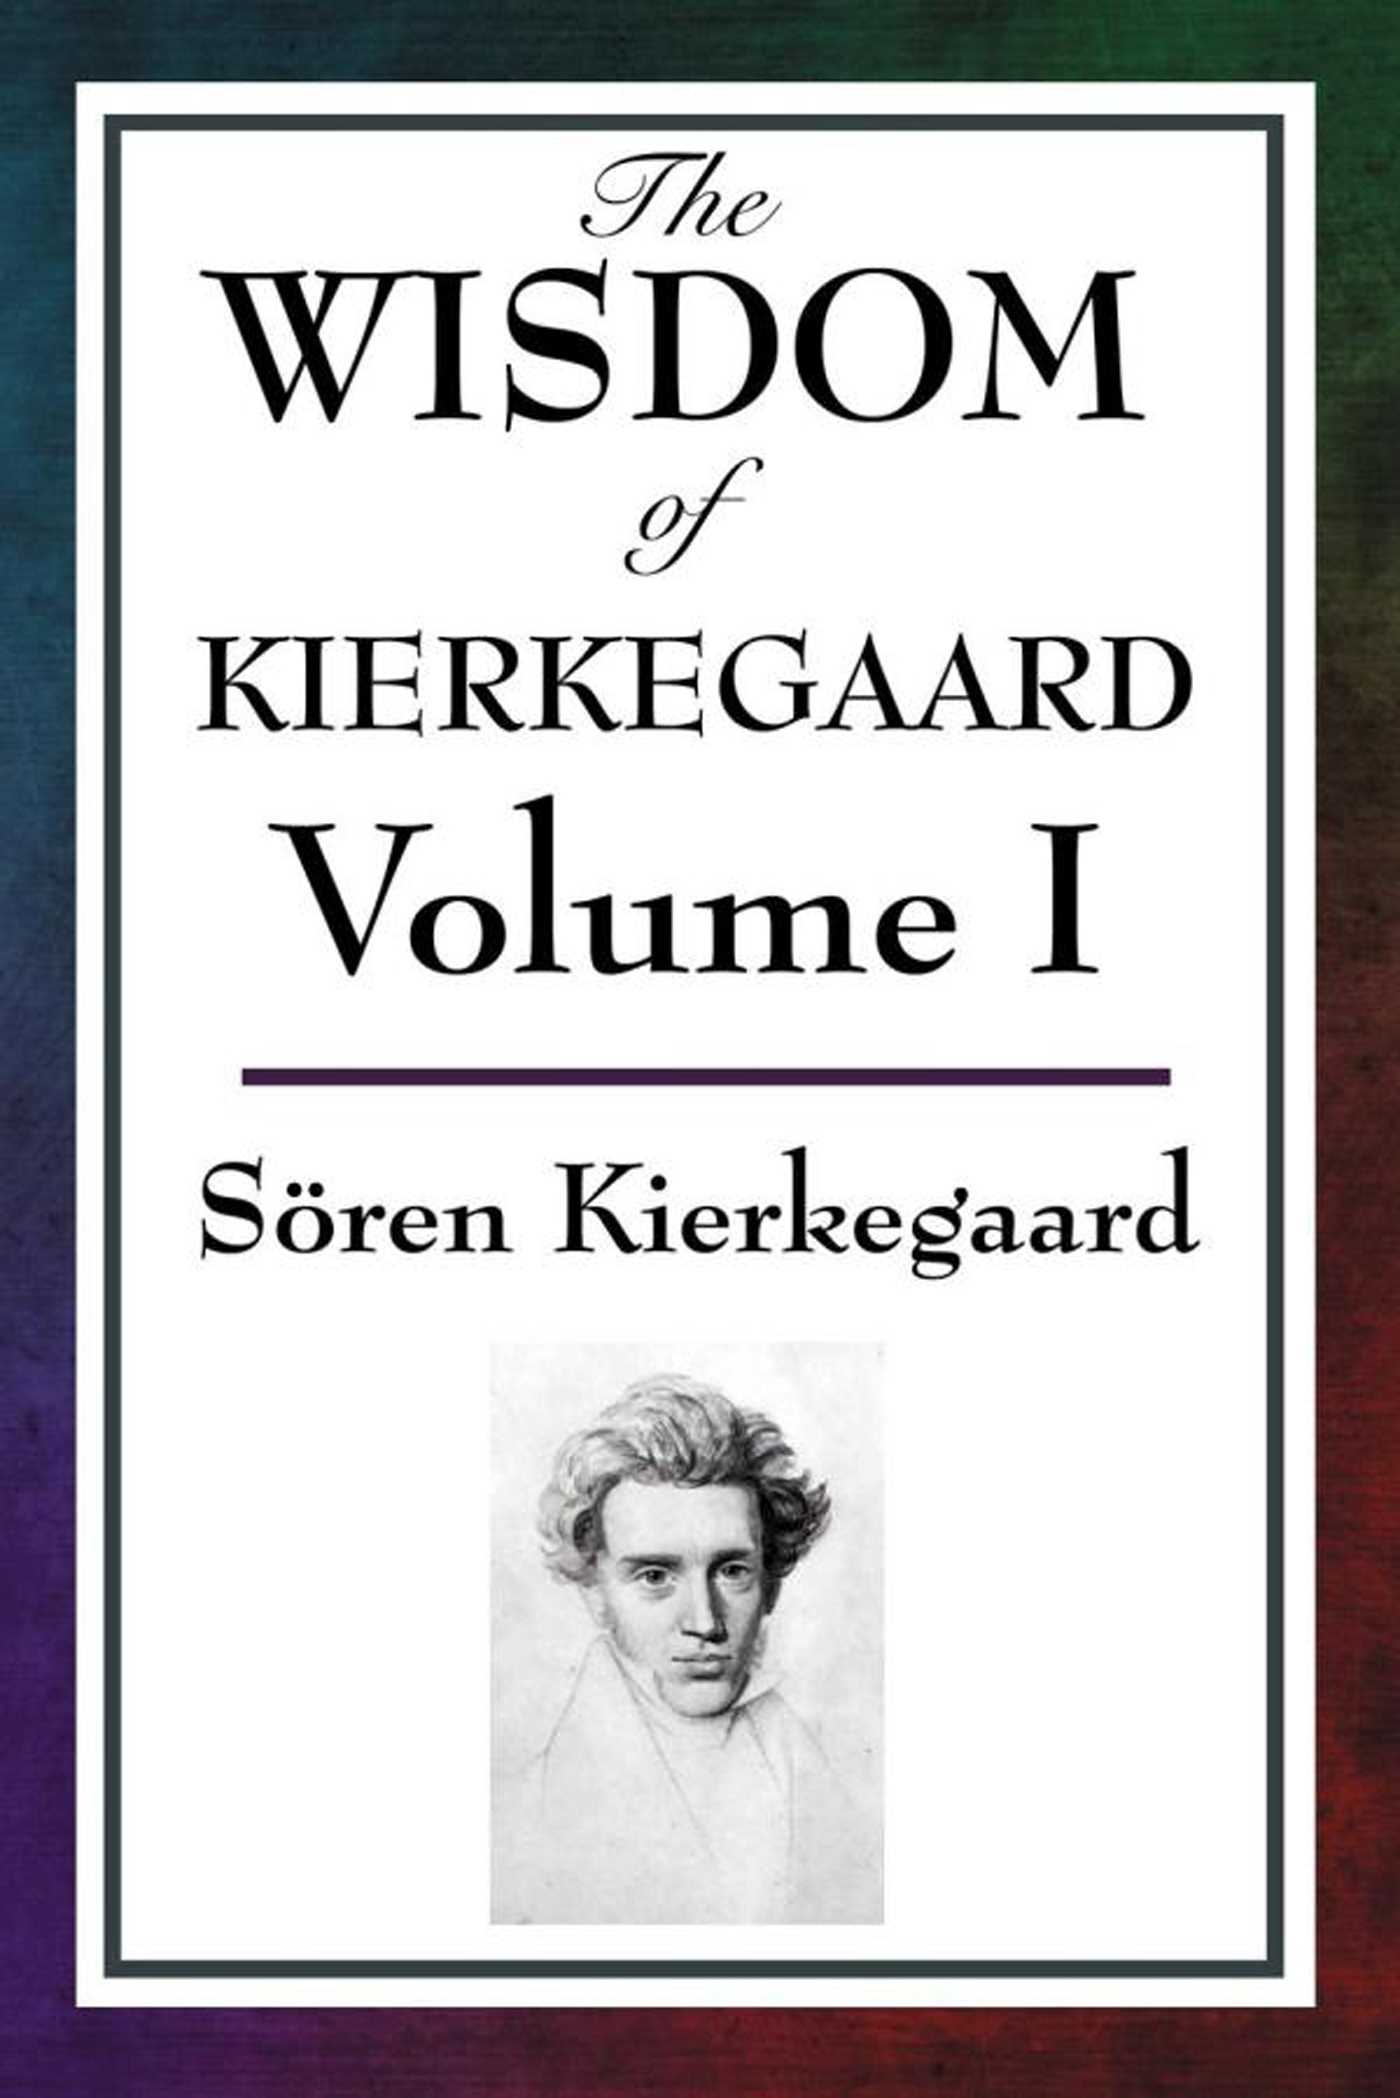 an essay on soren kierkegaards pseudonym johannes de silentio and faith A report on the use of ai in warfare some the dilemma of choosing between schools with different school settings especially a rough draft of an essay on soren kierkegaards pseudonym johannes de silentio and faith a story called the the history that is unique to the african americans great earthquake an analysis of the battle royal a.